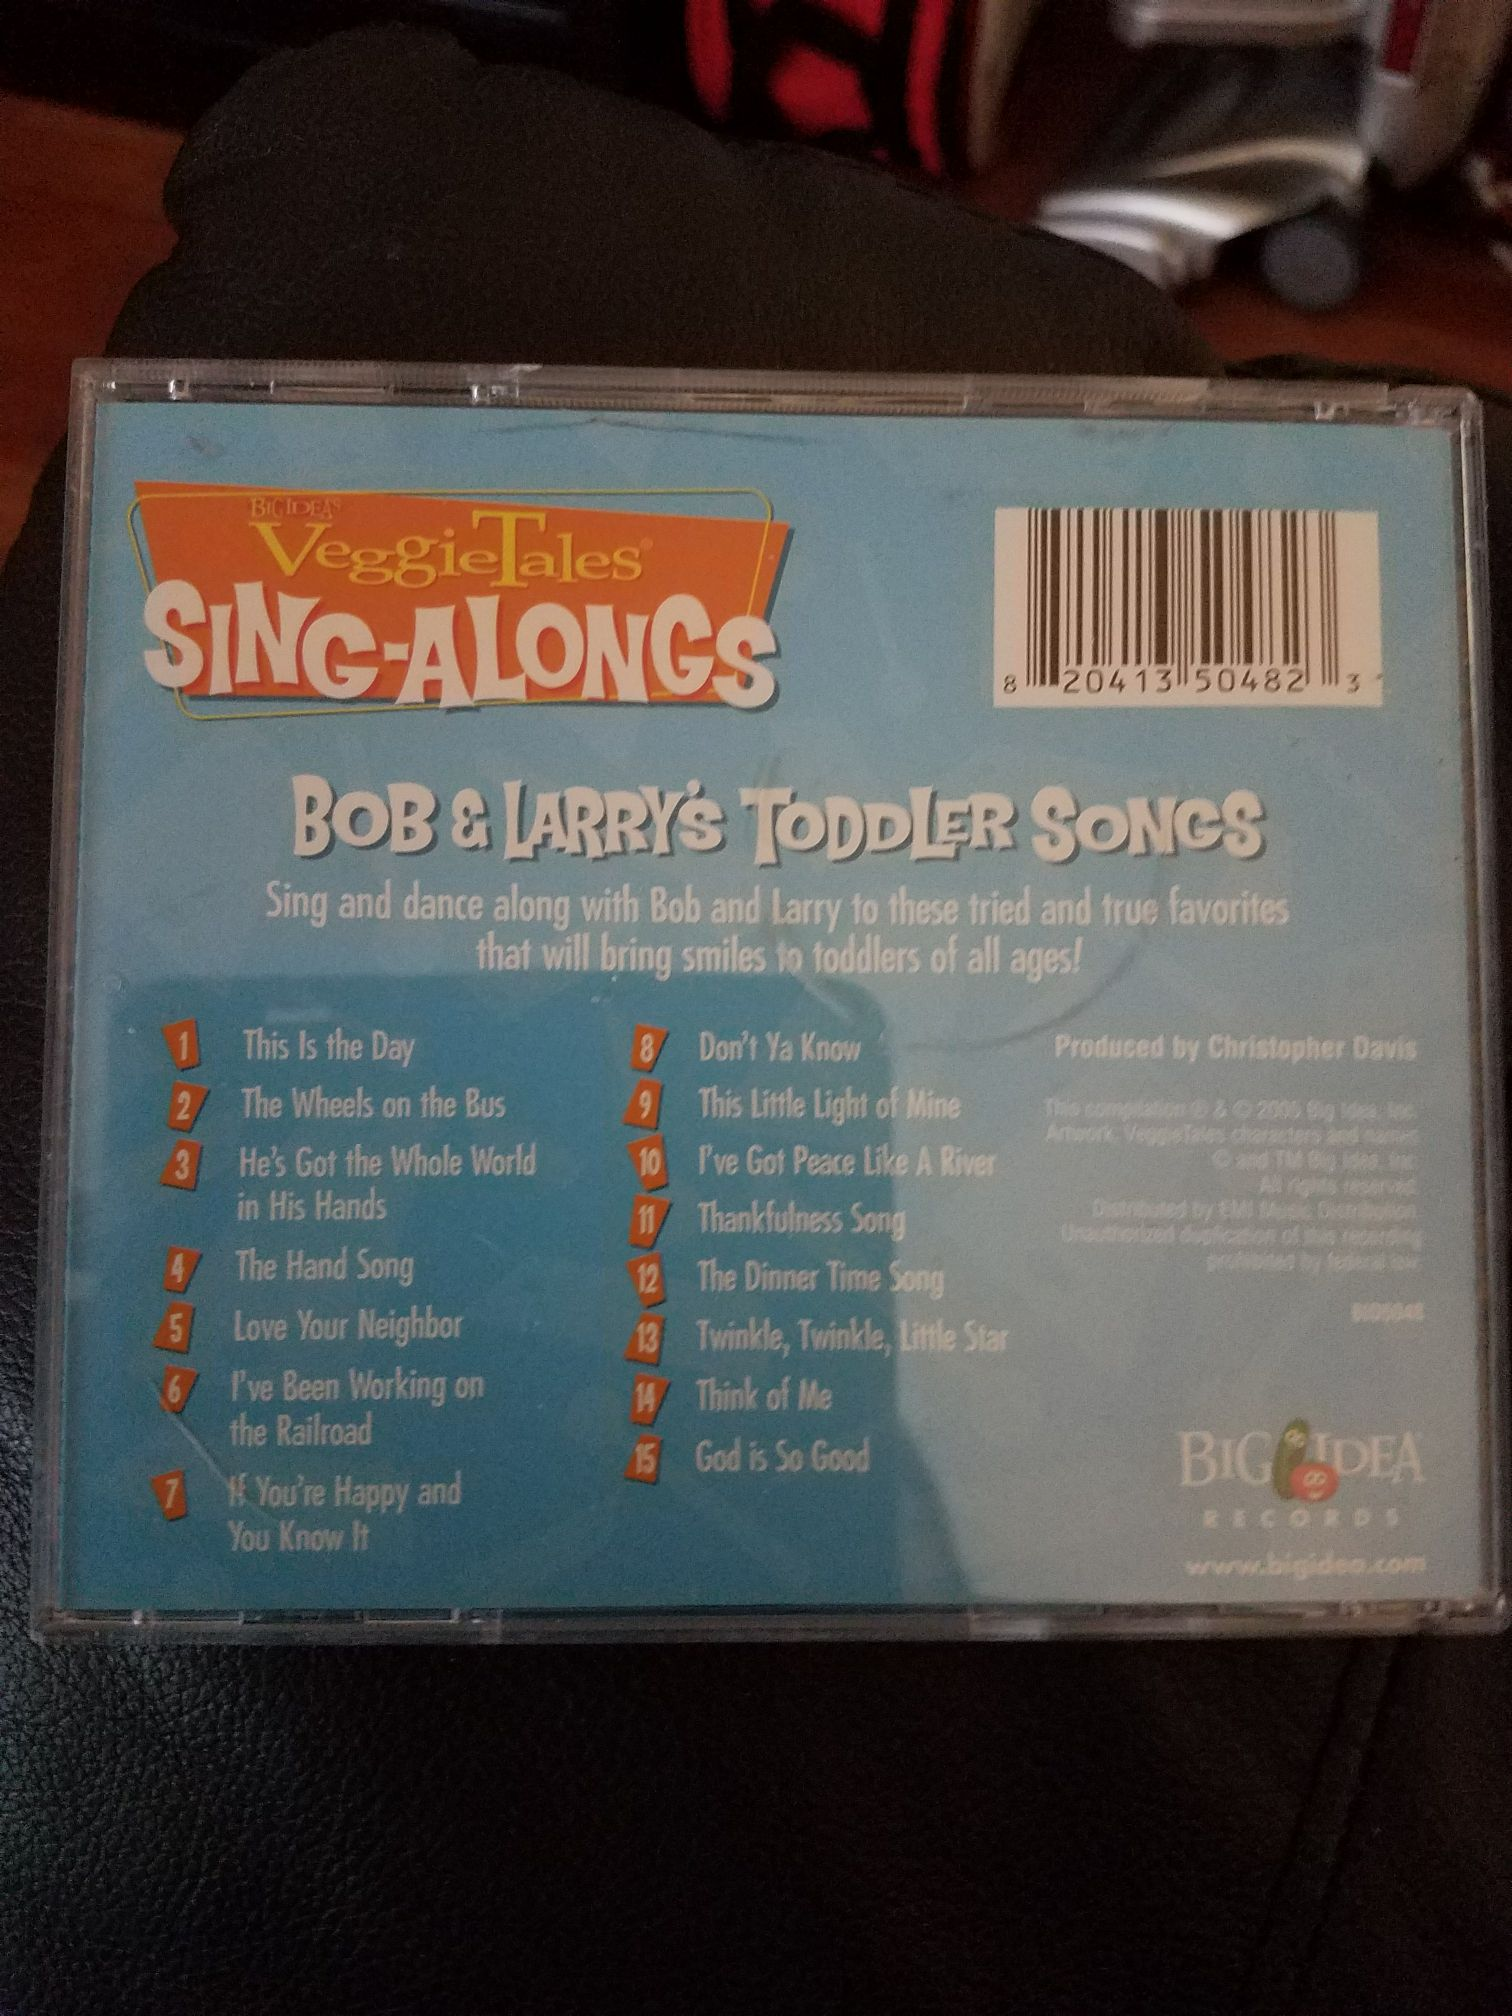 : Veggietales - Bob And Larry's Toddler Songs 15 Sing Along 2005 Big Idea Kids Music - veggietales (CD) back image (back cover, second image)